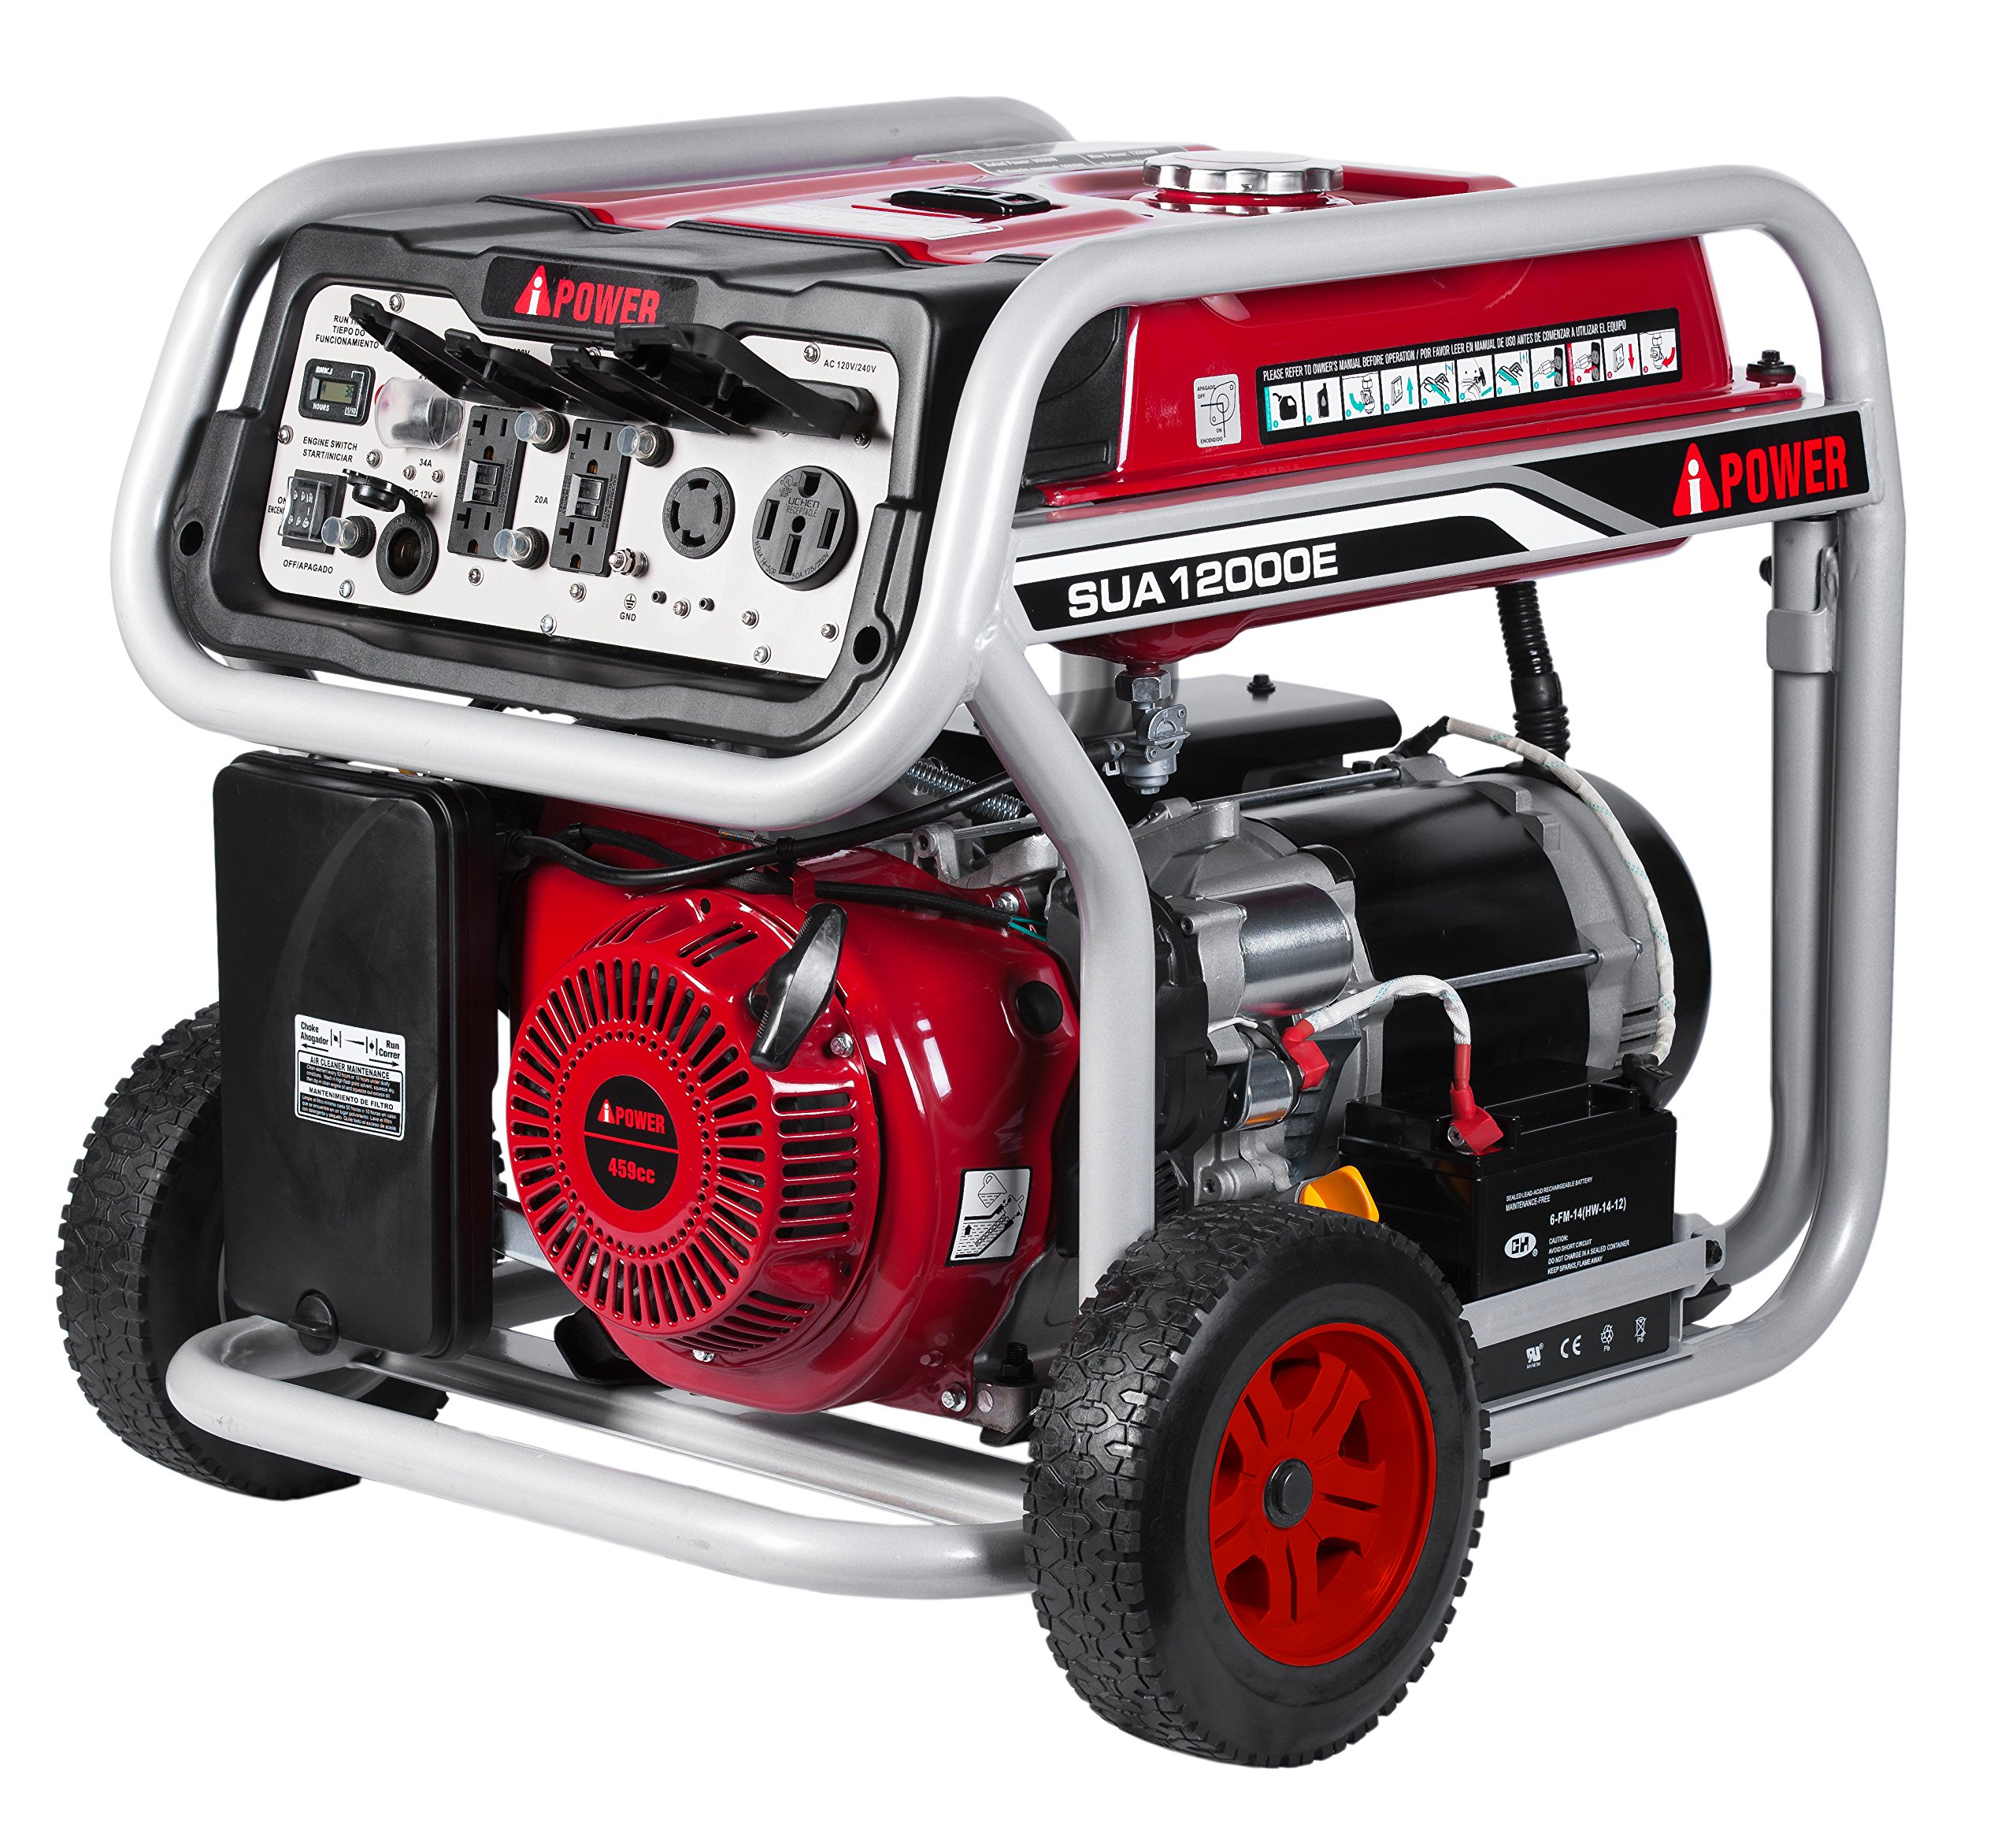 A-iPower SUA12000E 12,000-Watt Portable Generator Gas Powered Electric Start, Wheel Kit Included